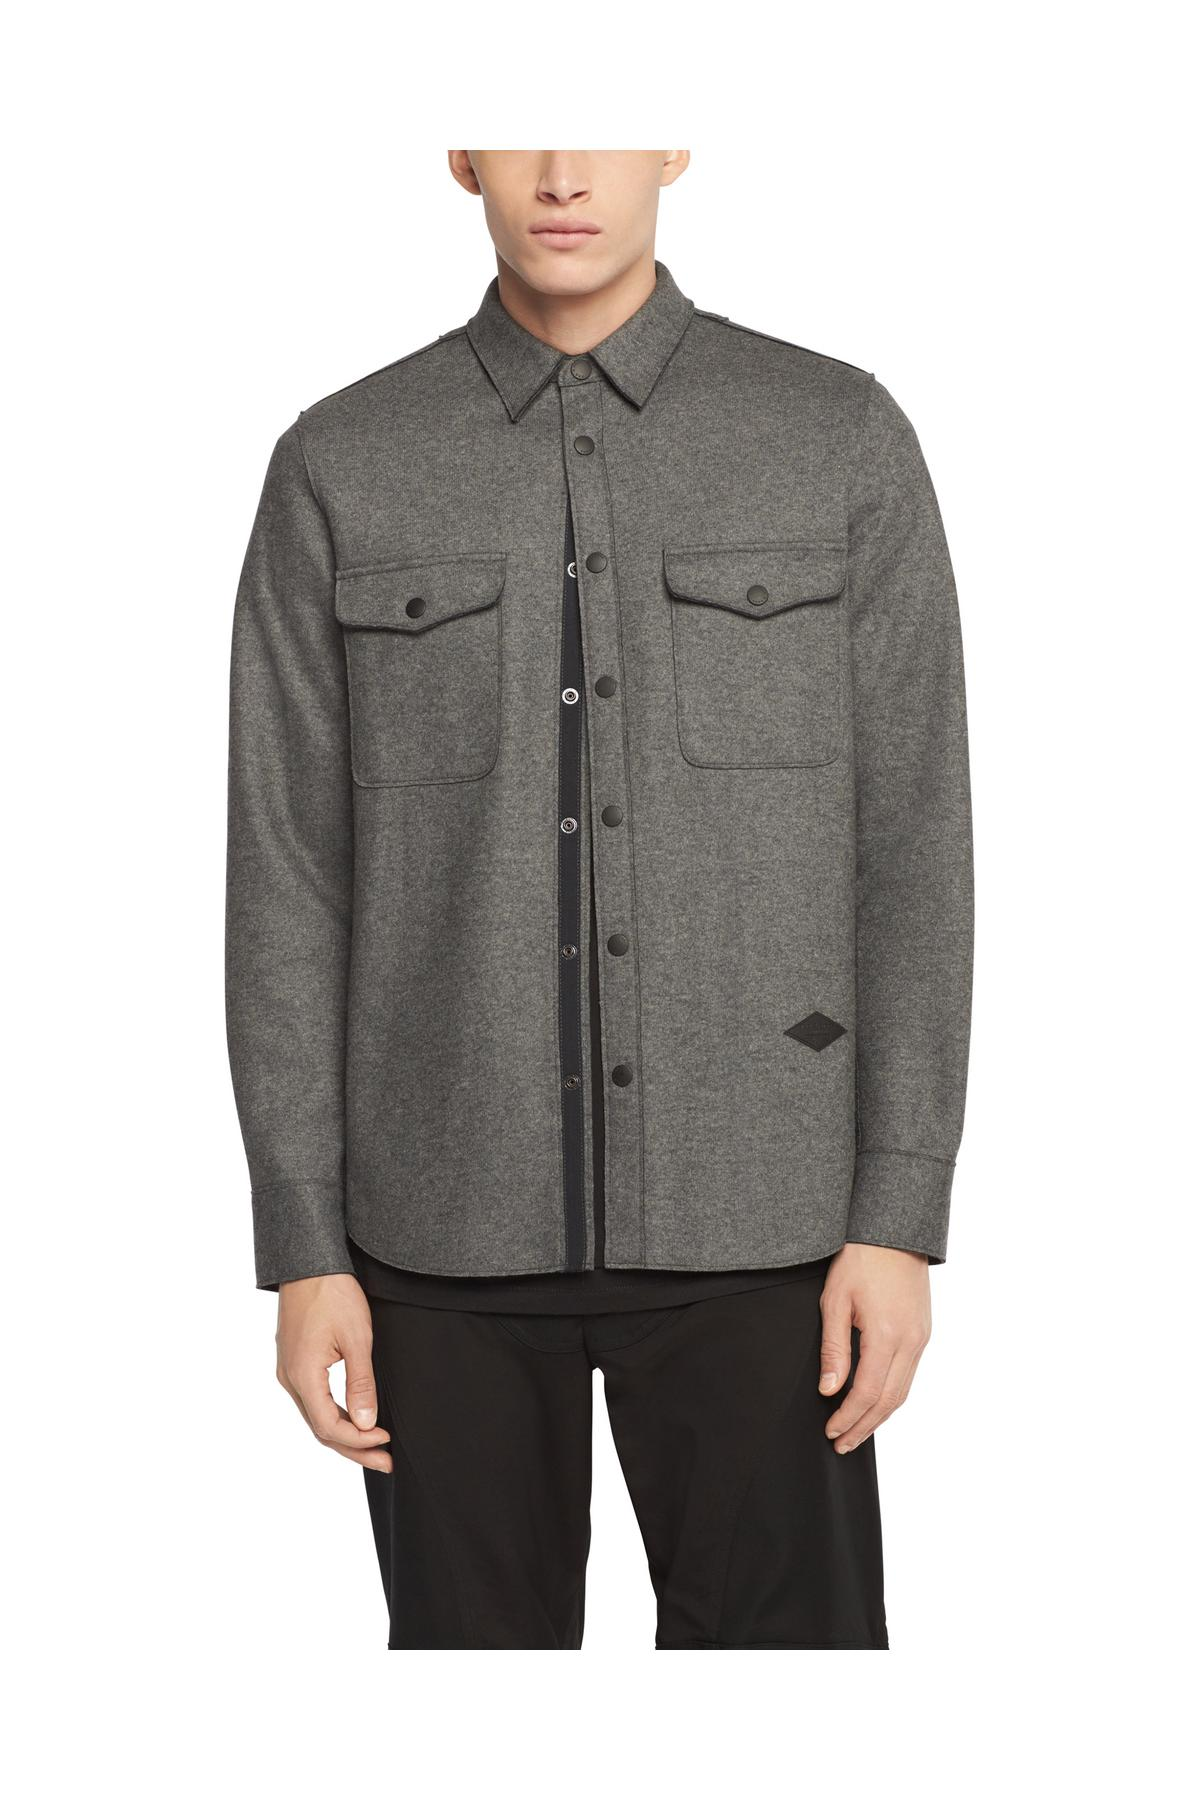 RAG & BONE RAW EDGE JACK SHIRT